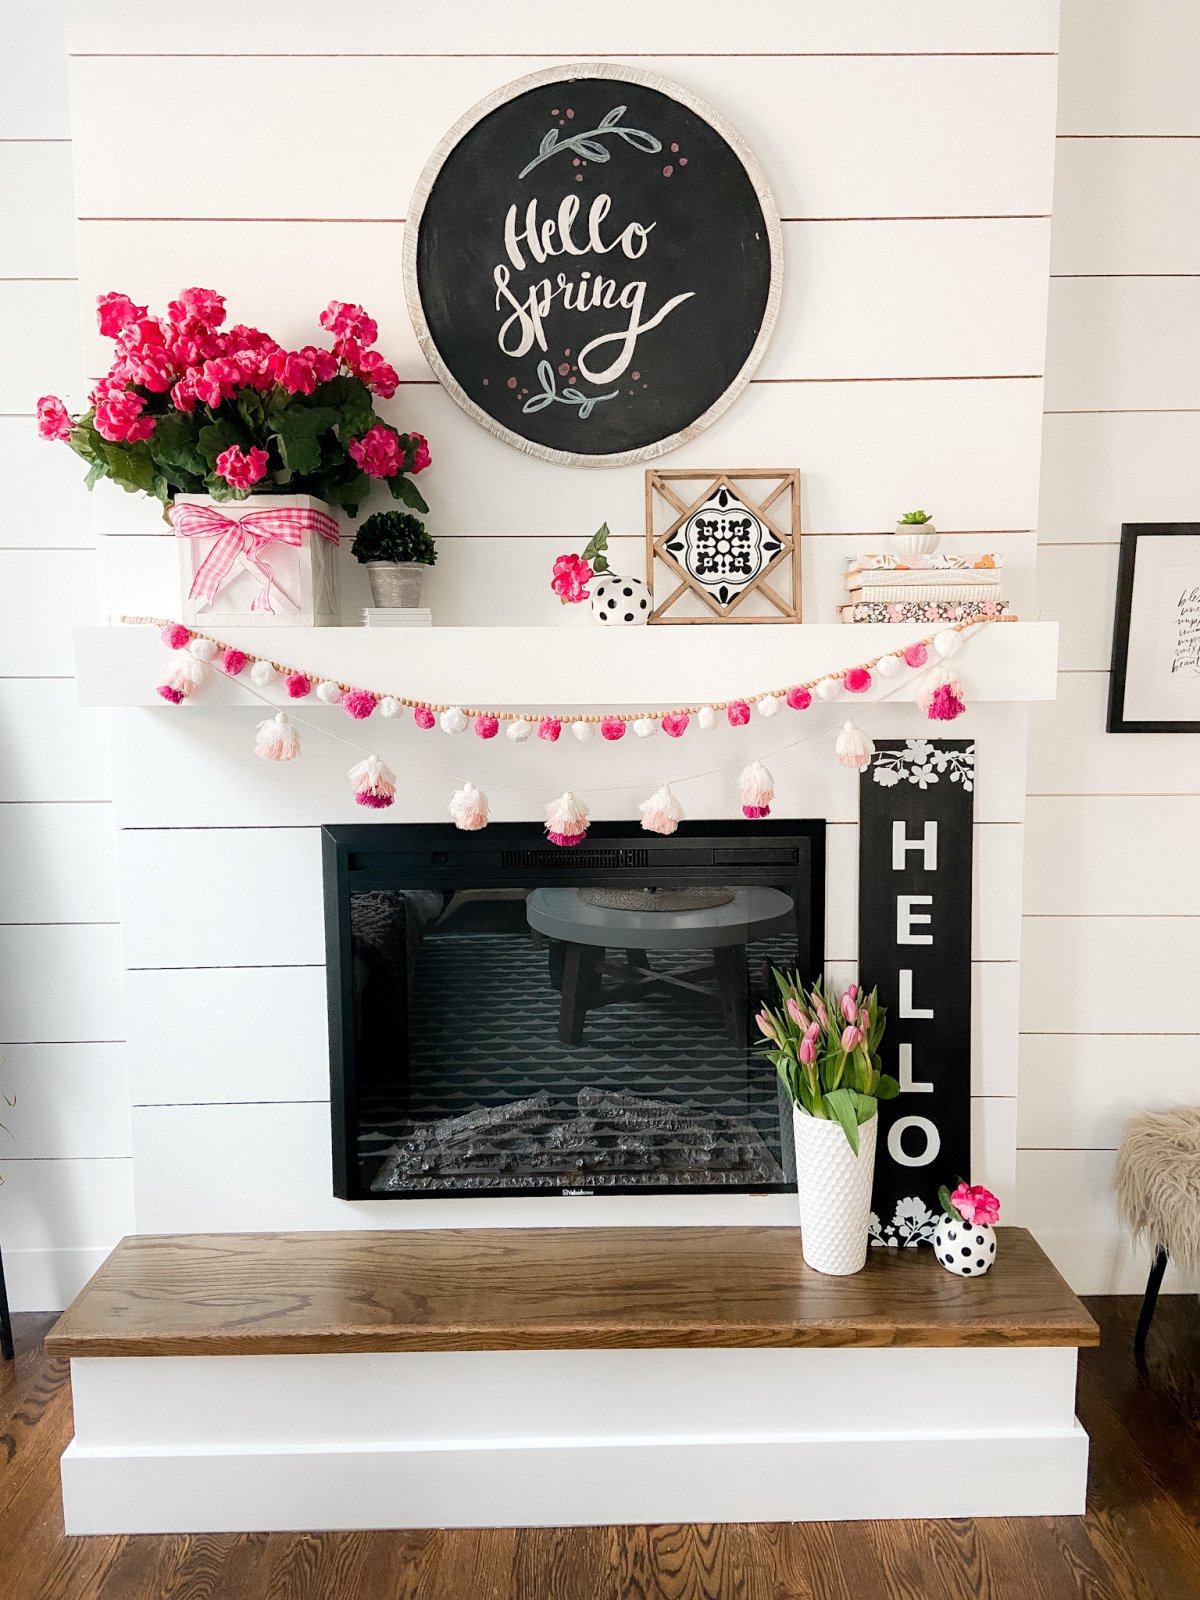 Colorful Spring Mantel with DIY Chalkboard Sign. Add spring color to your home with bright flowers, pretty accents and a DIY chalkboard!